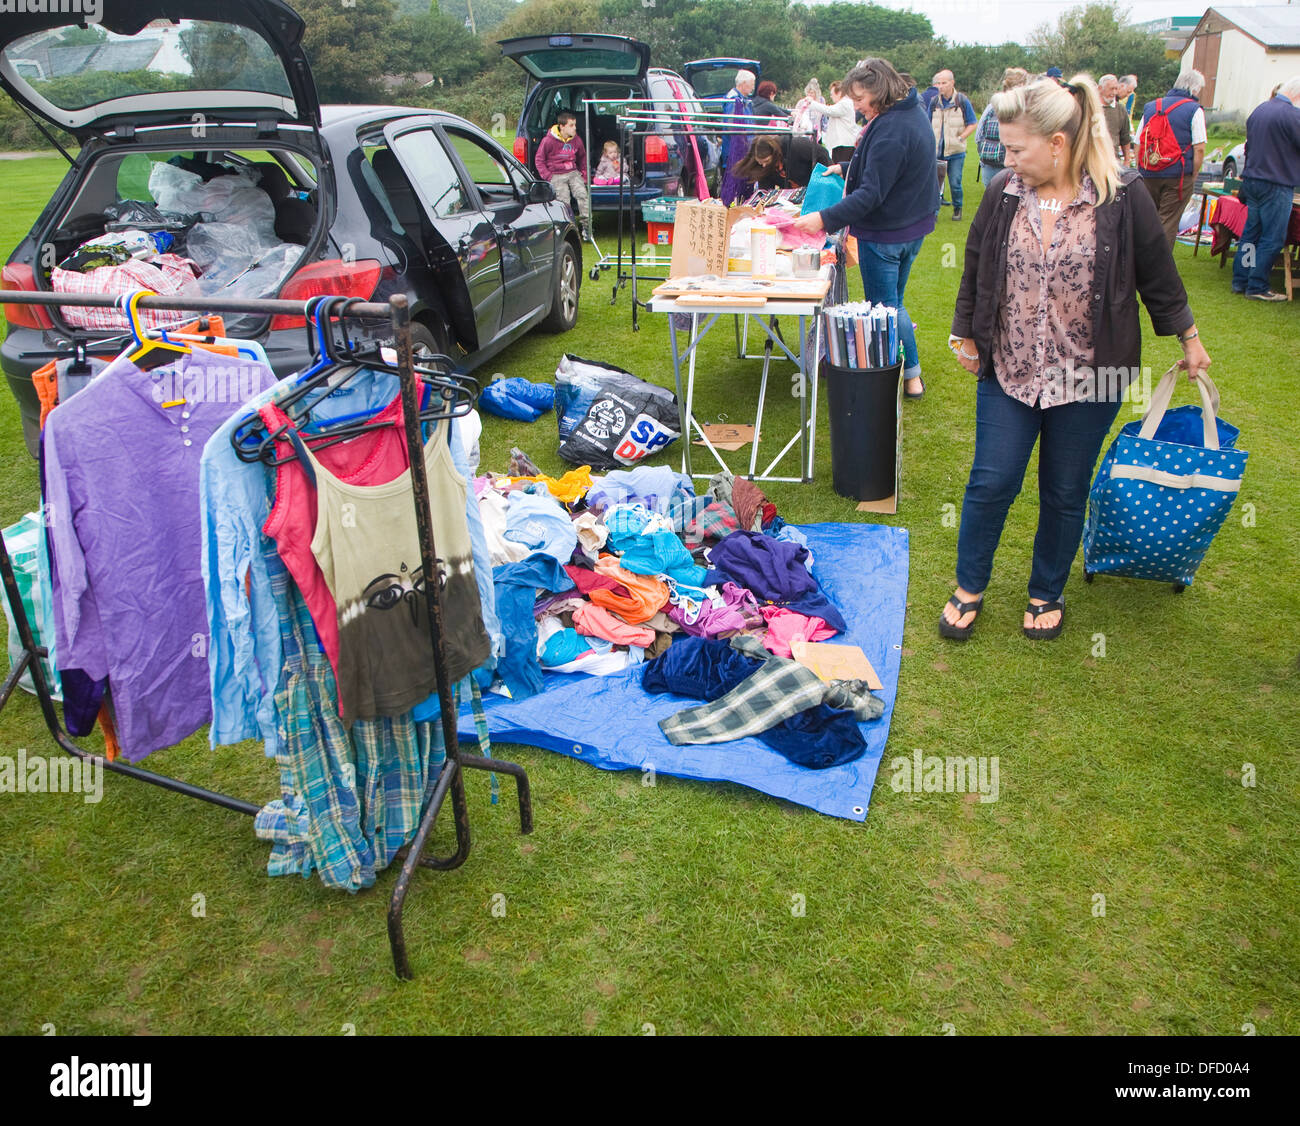 Second Hand Clothes Stock Photos & Second Hand Clothes Stock Images ...